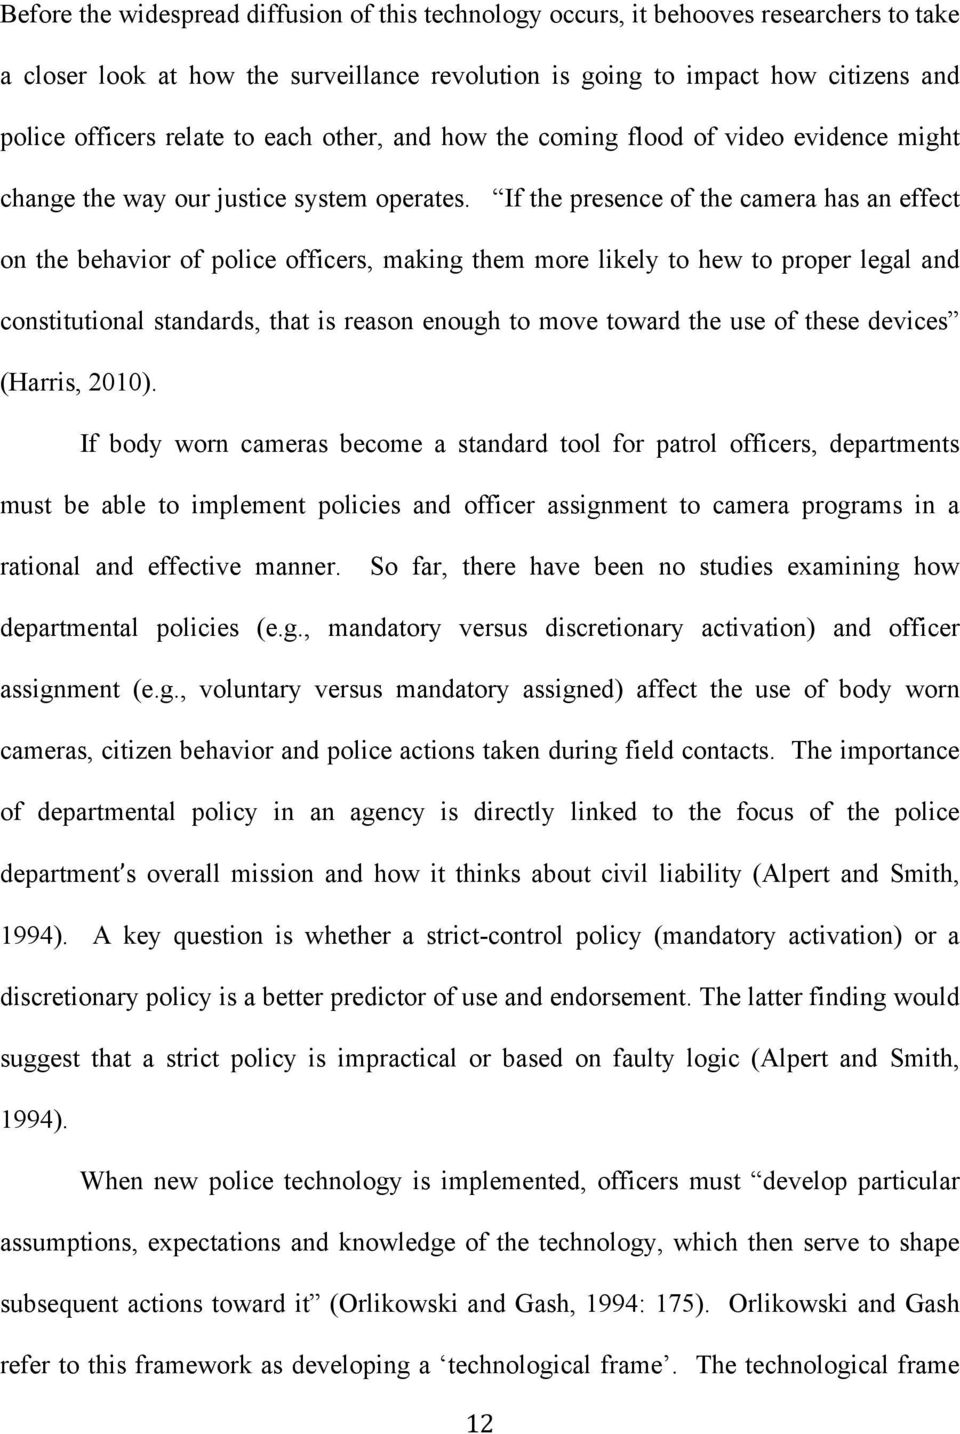 If the presence of the camera has an effect on the behavior of police officers, making them more likely to hew to proper legal and constitutional standards, that is reason enough to move toward the